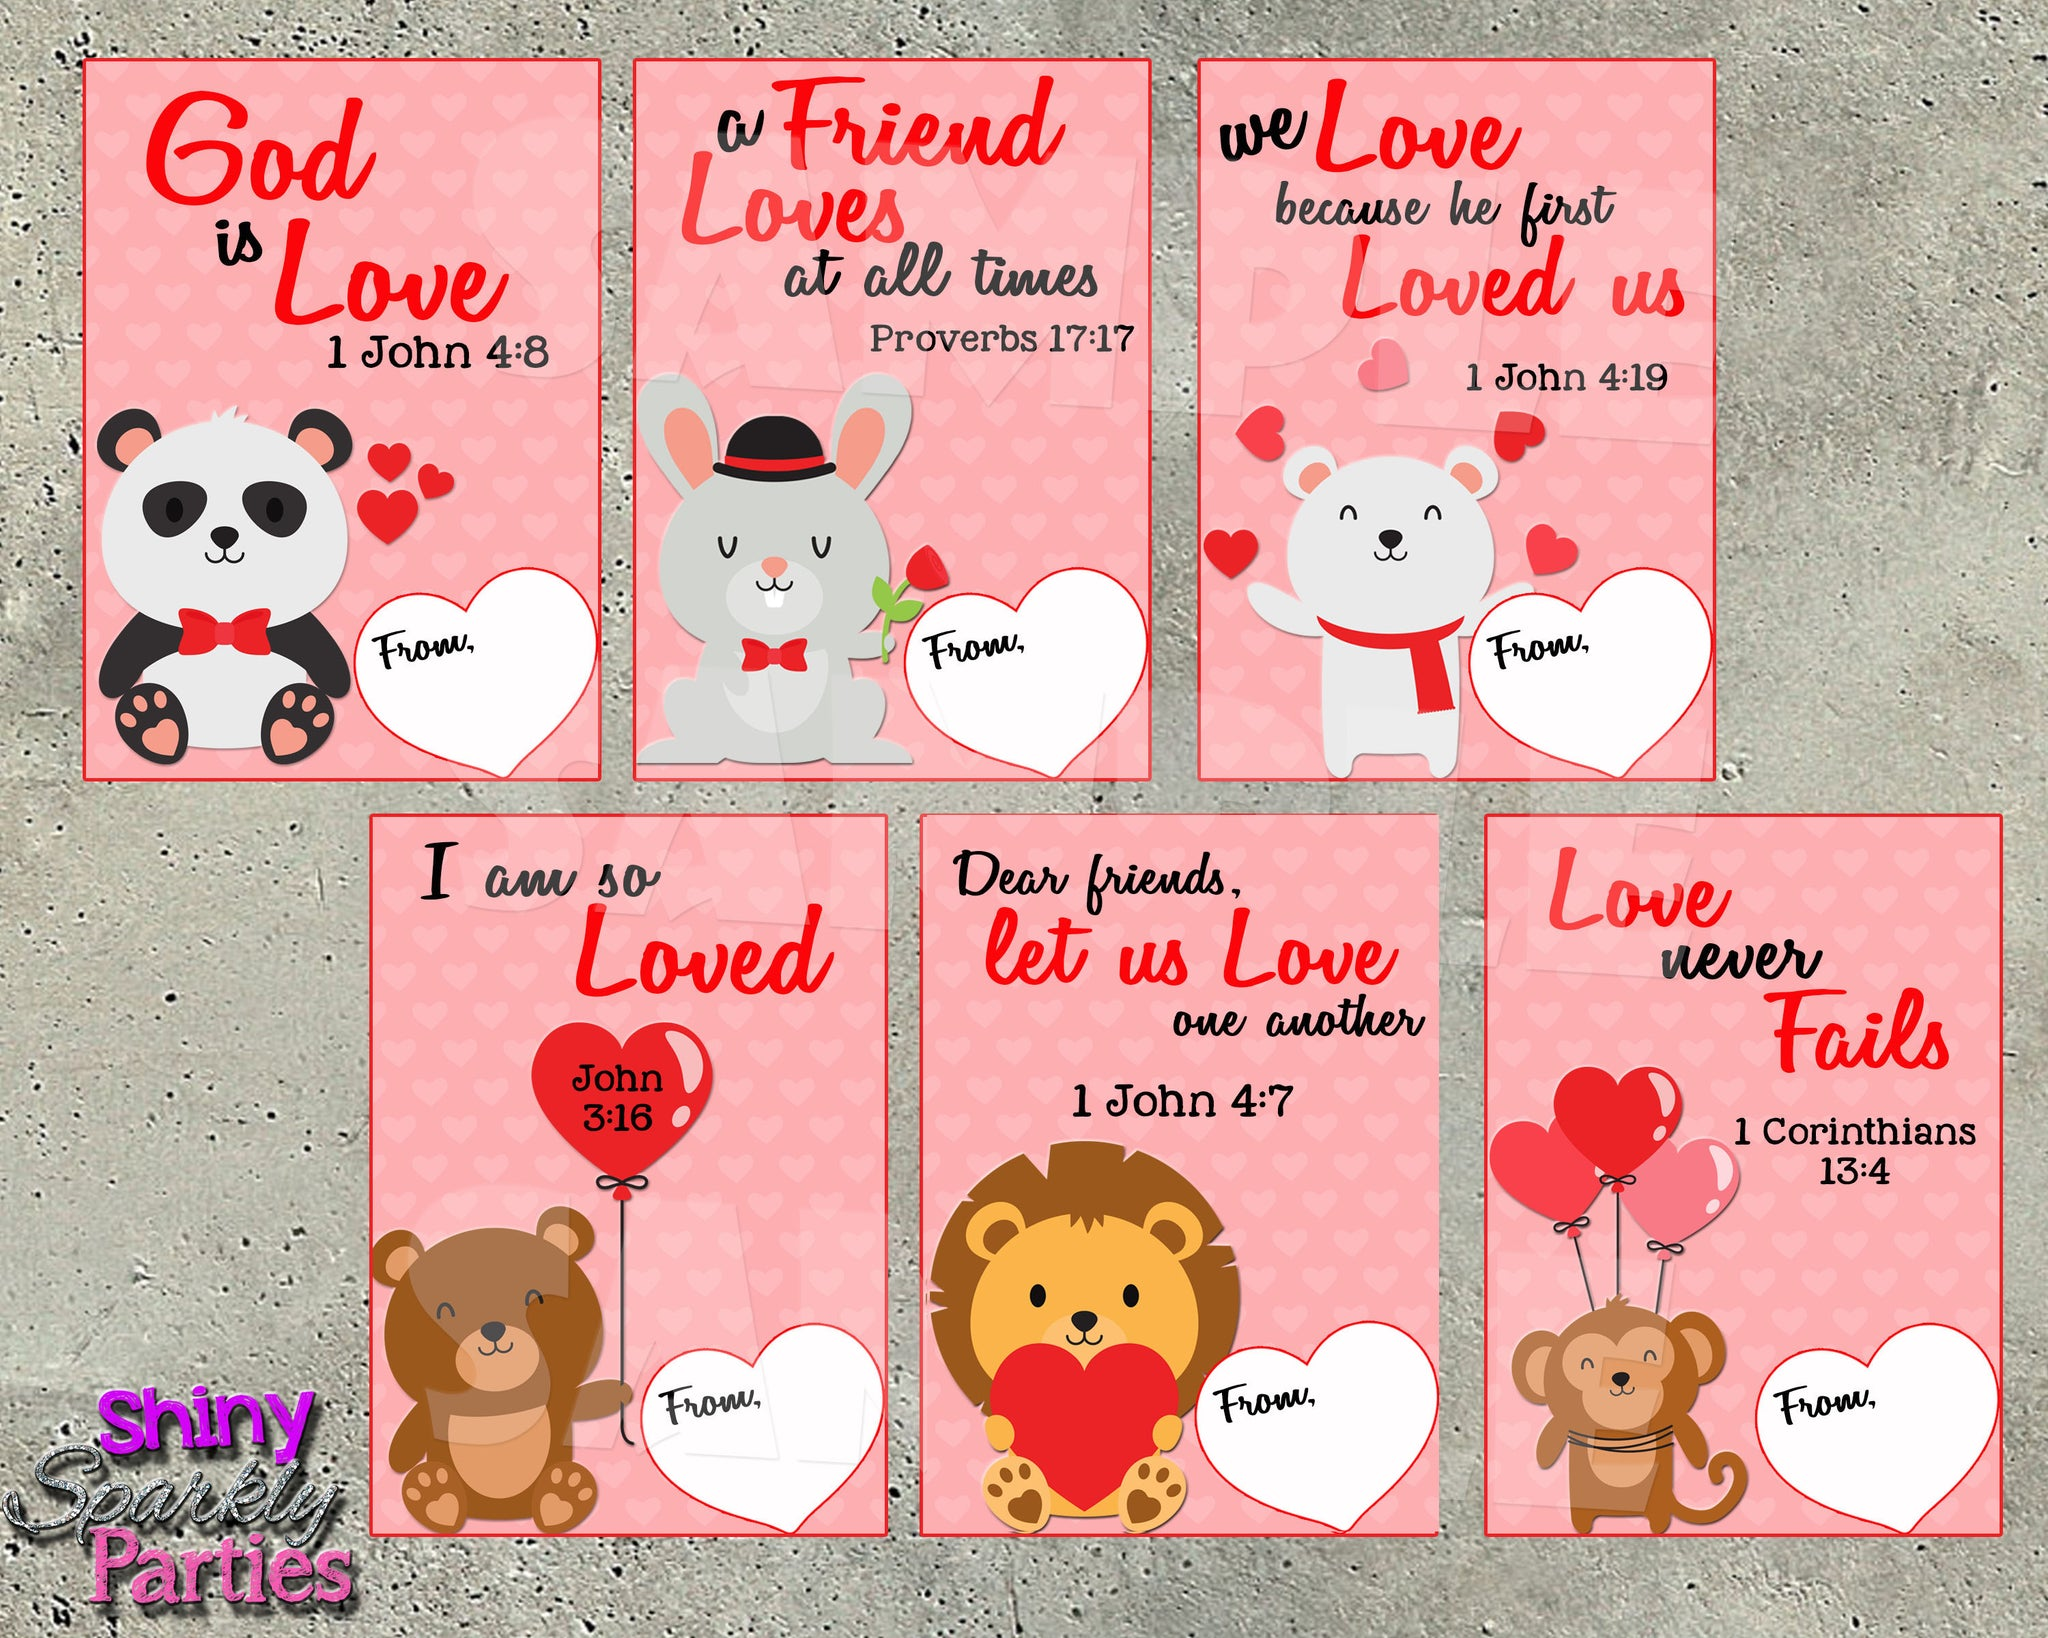 photo about Bible Verse Cards Printable referred to as Bible Verse Valentine Playing cards - Printable Prompt Obtain